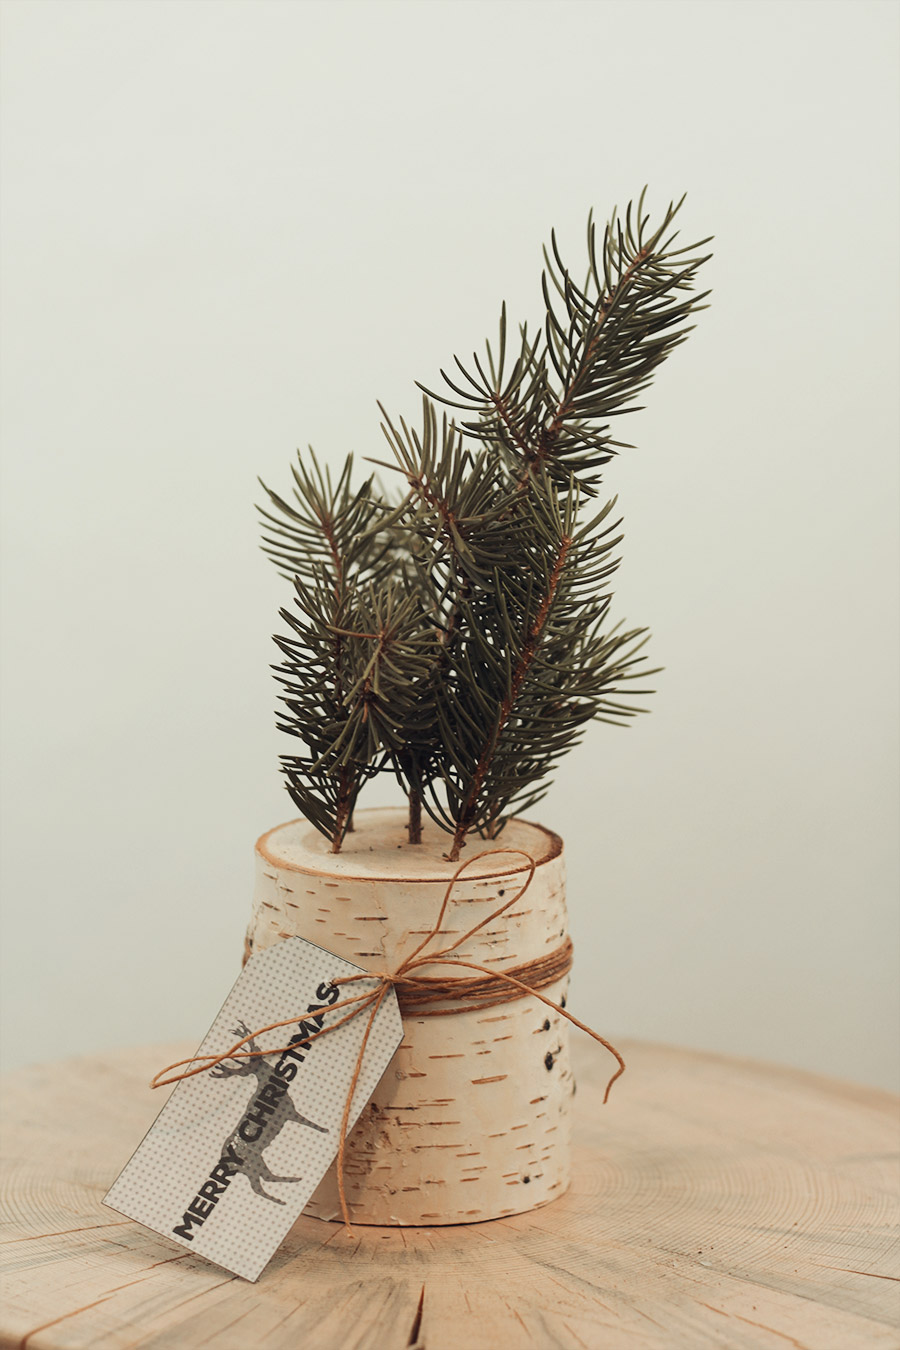 Handmade Christmas Decoration using a log and pine branches